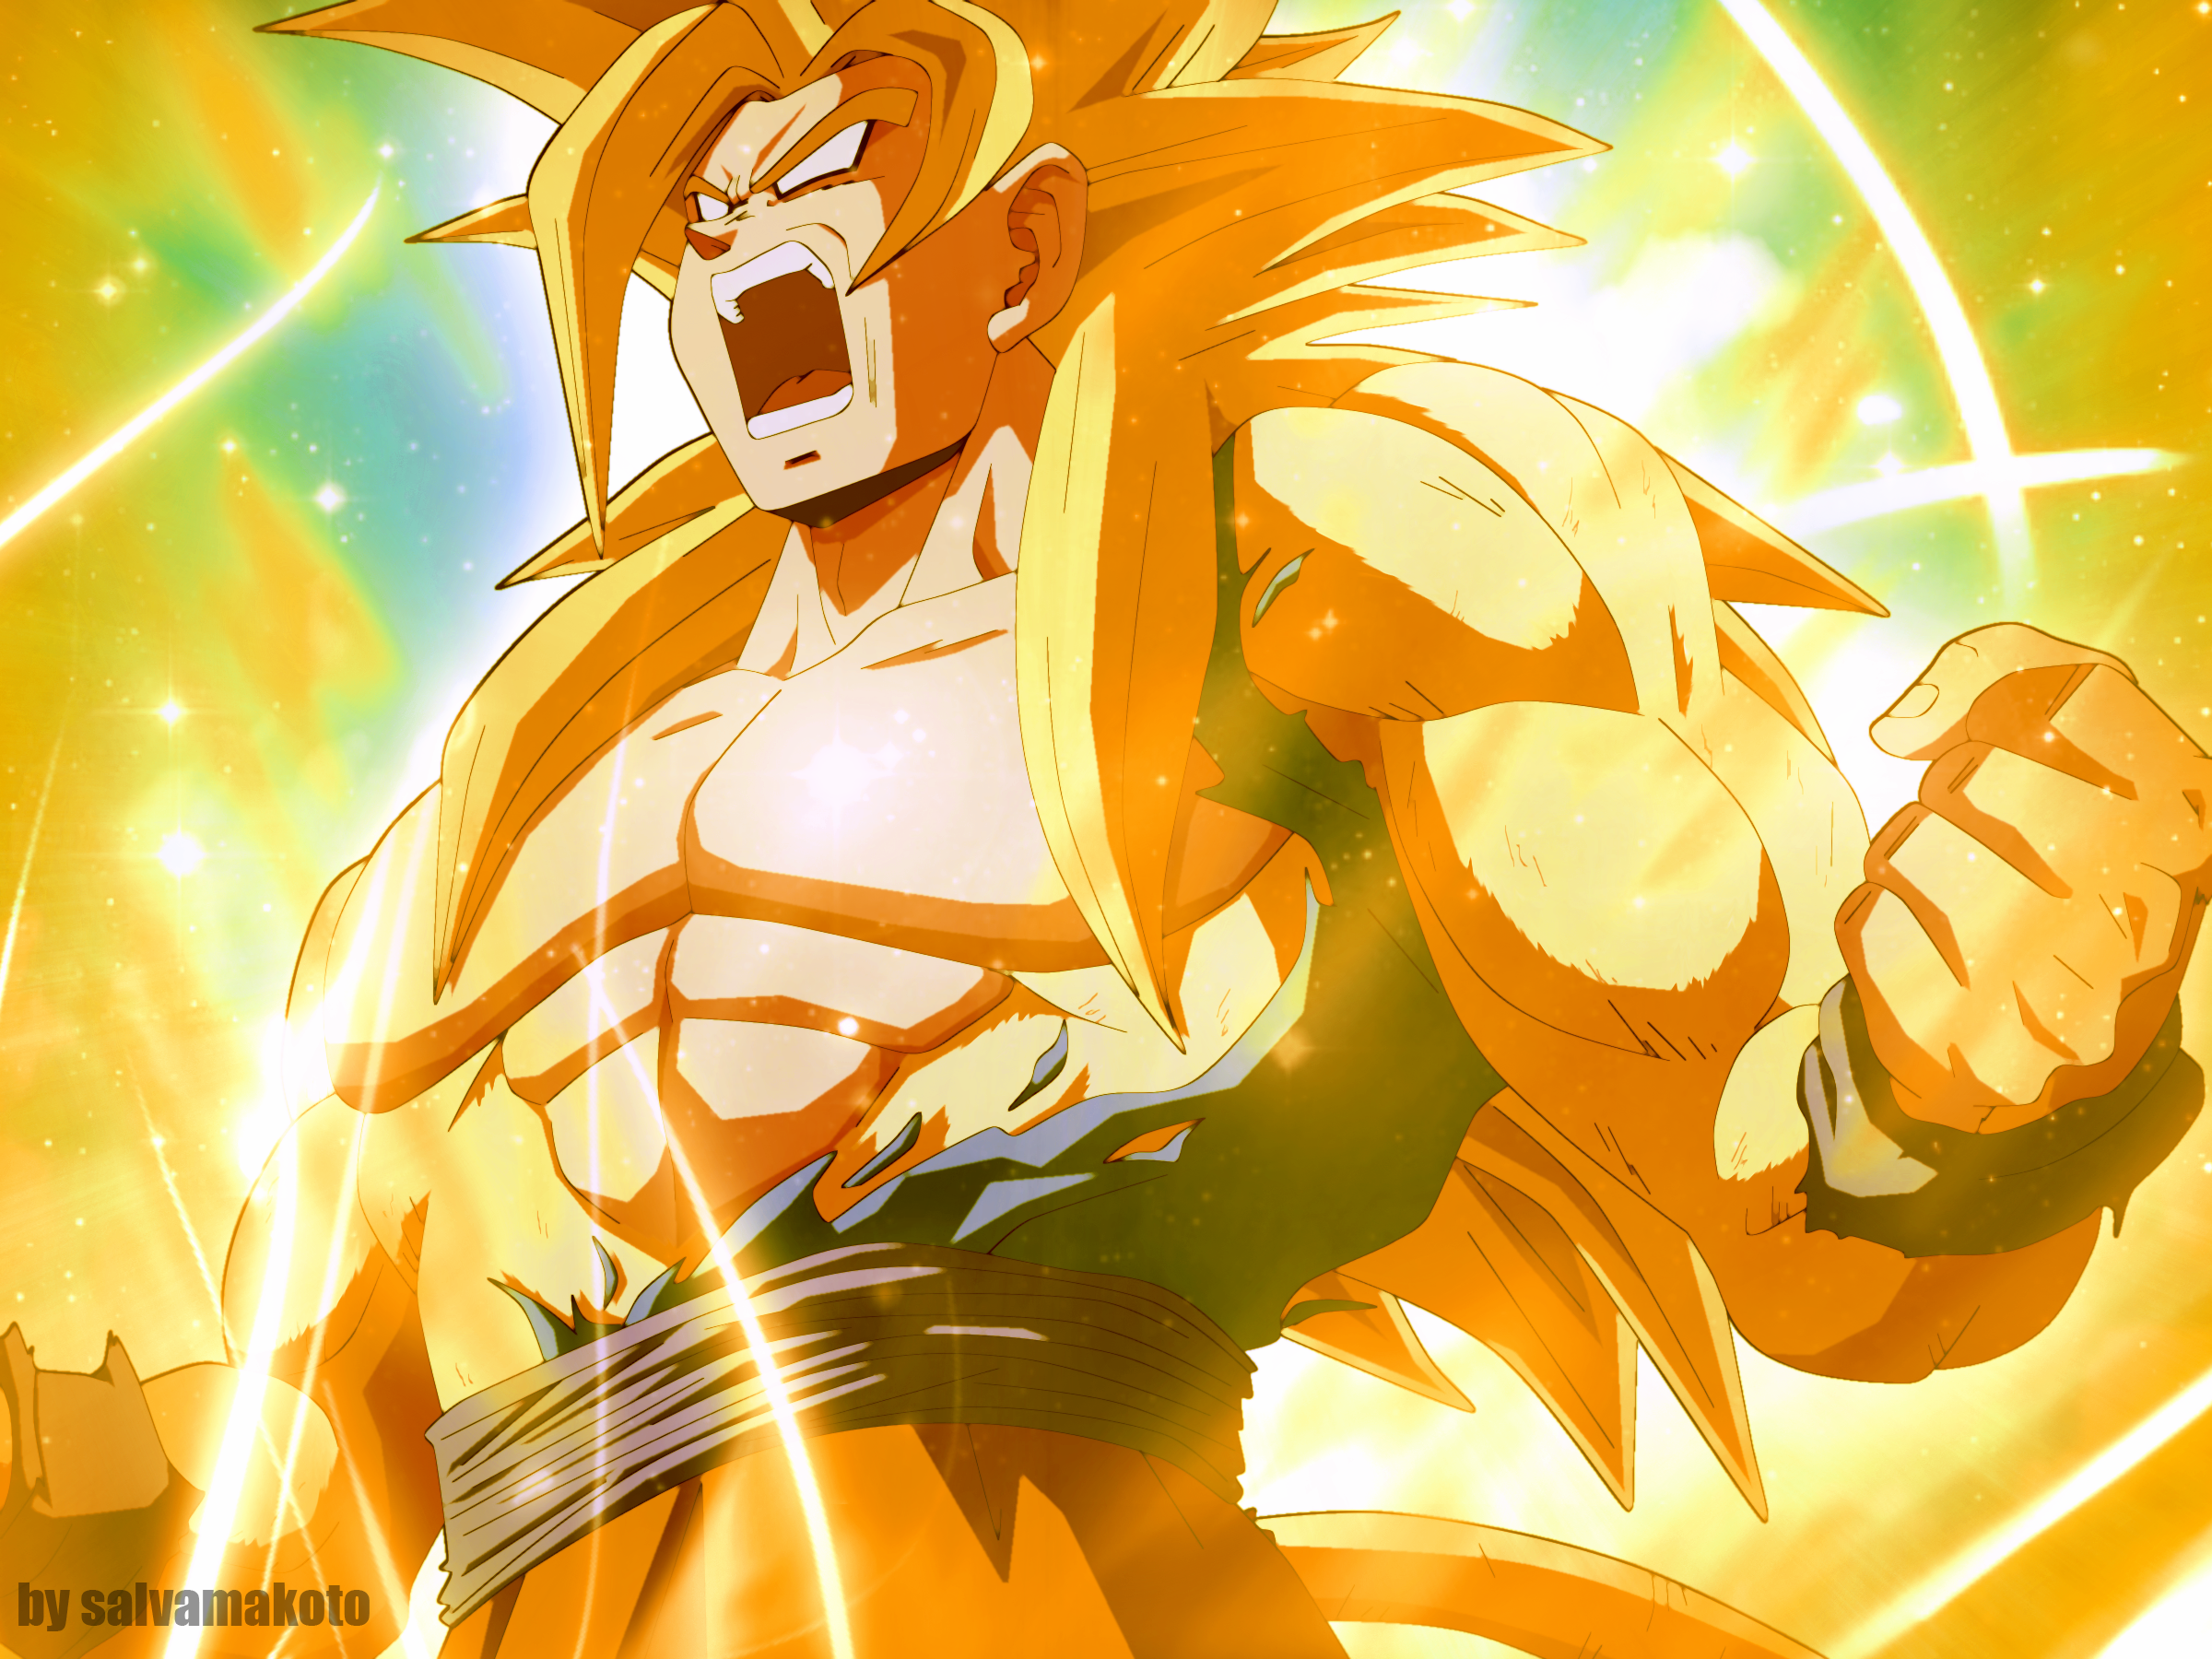 mi super saiyan god remasterizado by salvamakoto 2400x1800